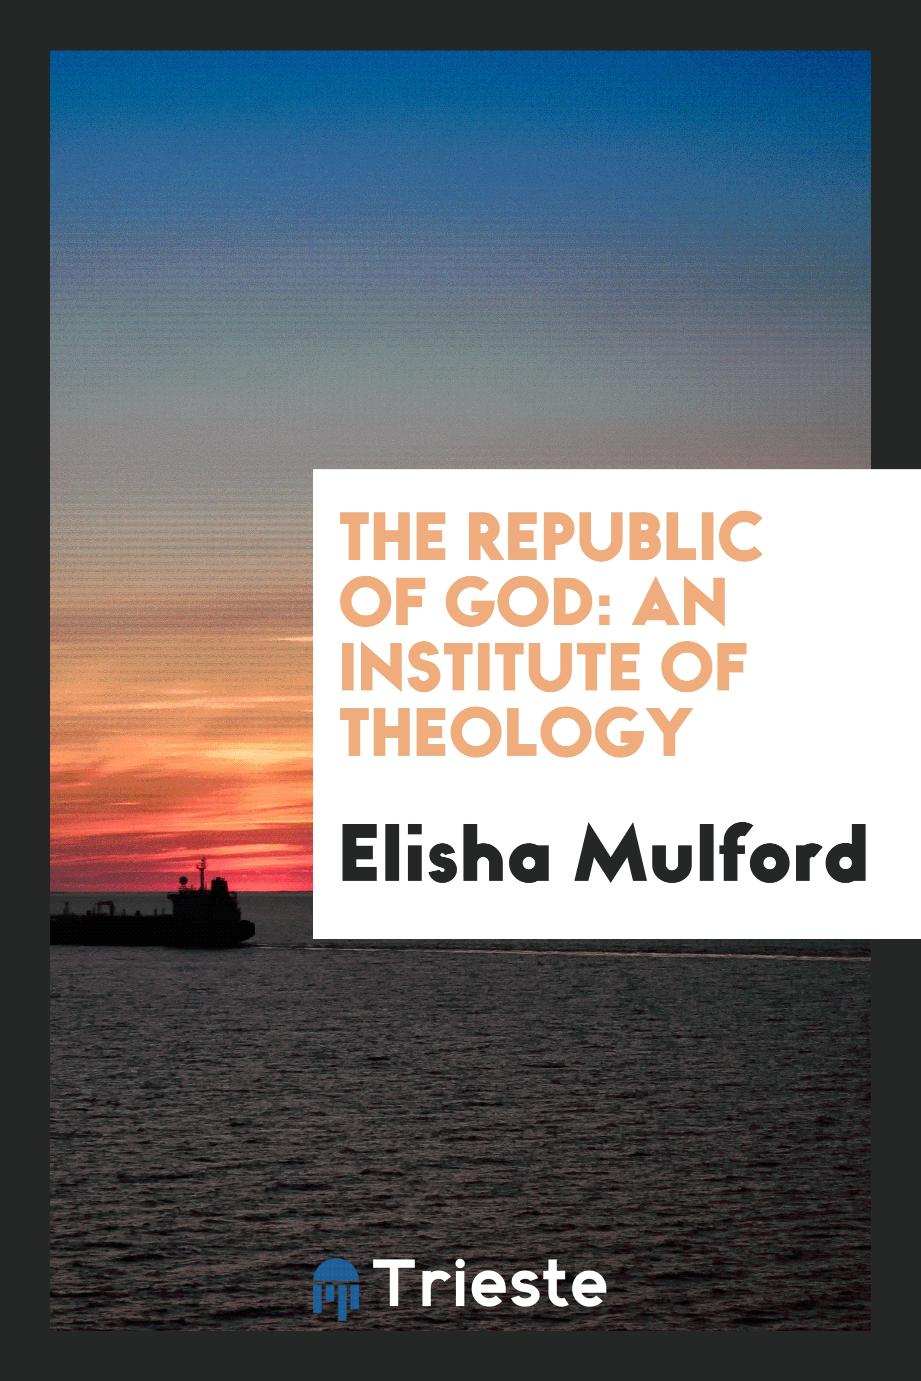 The republic of God: an institute of theology